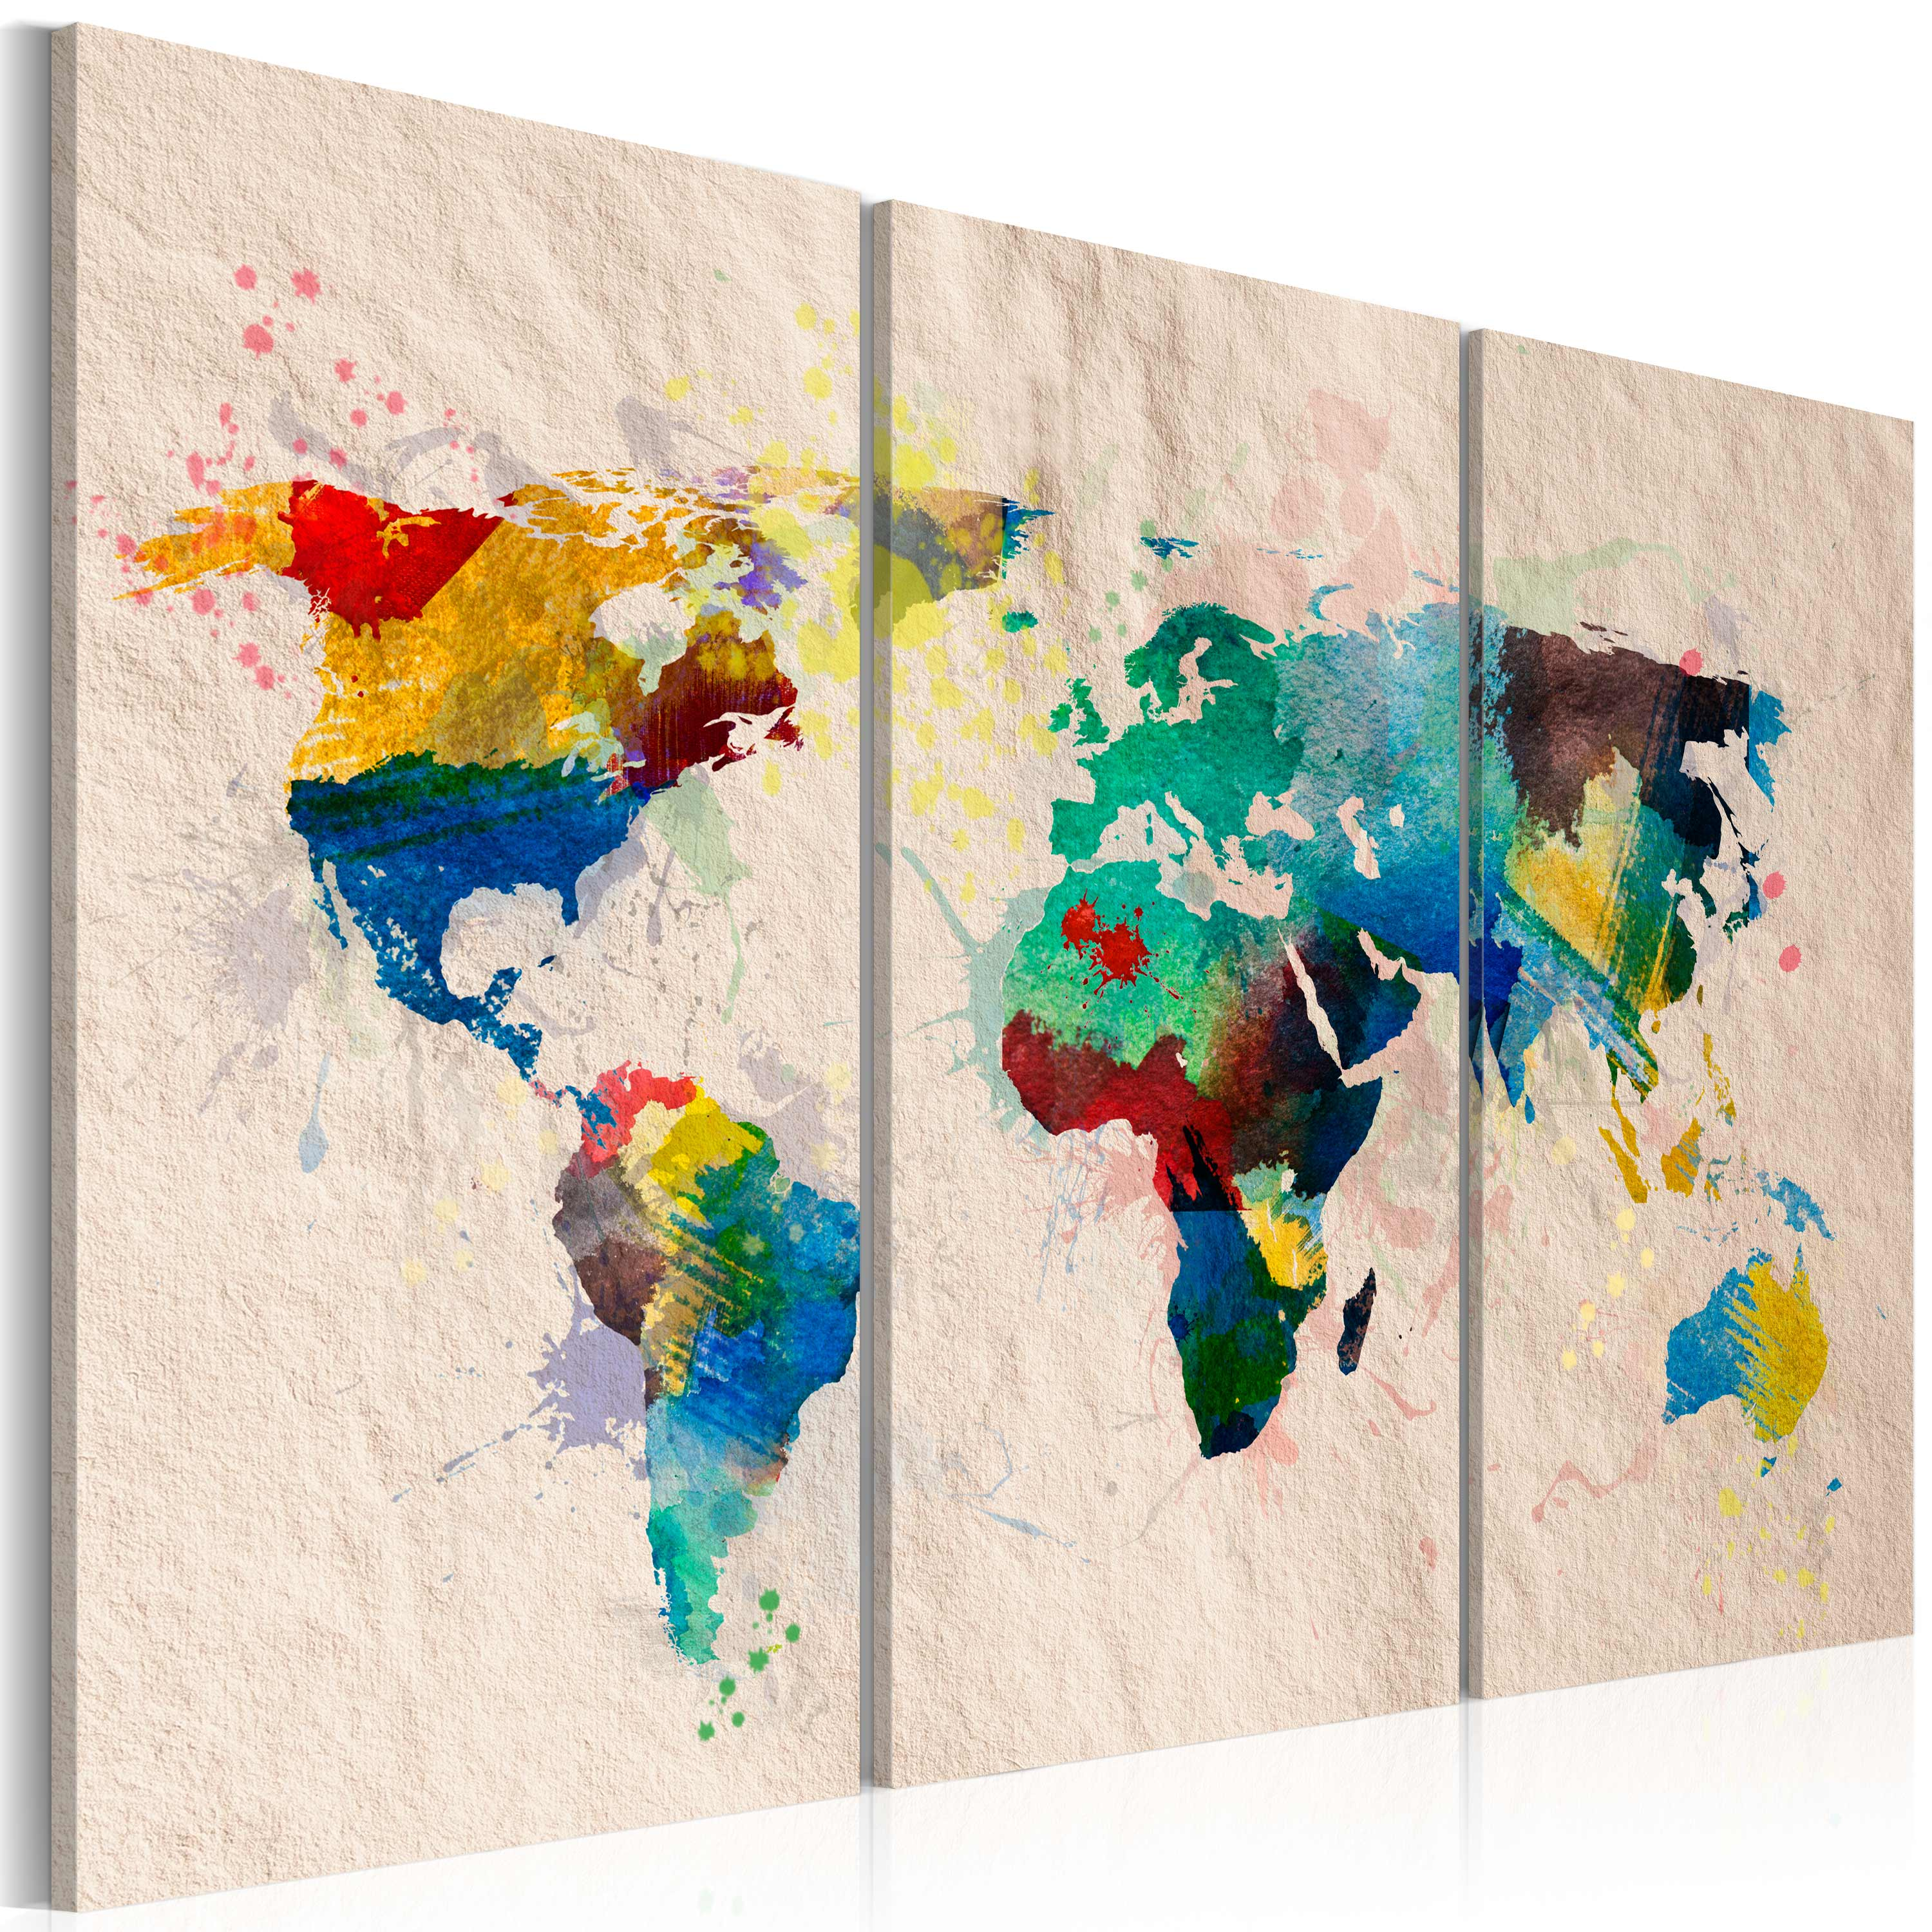 Obraz - The World of colors - triptych 120x80